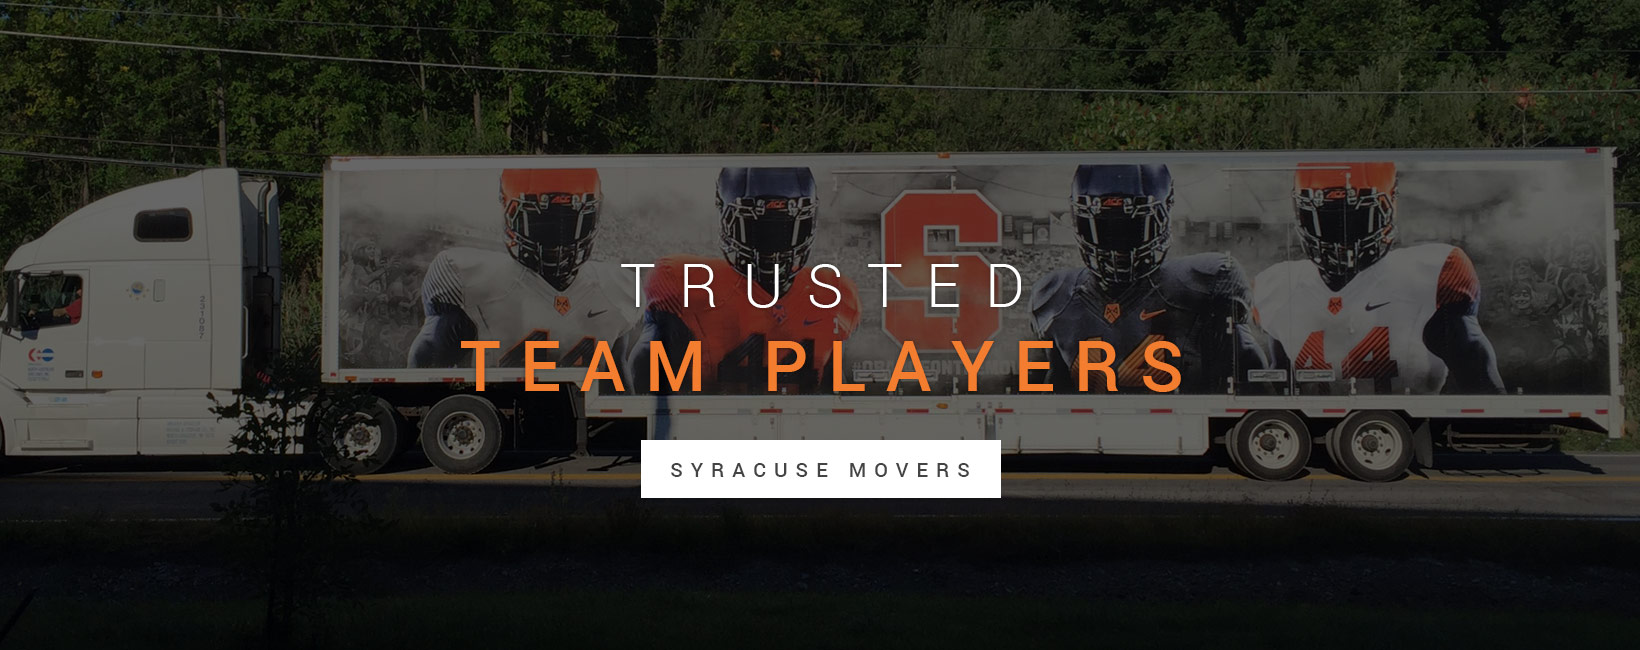 Trusted Team Players - Syracuse University Movers